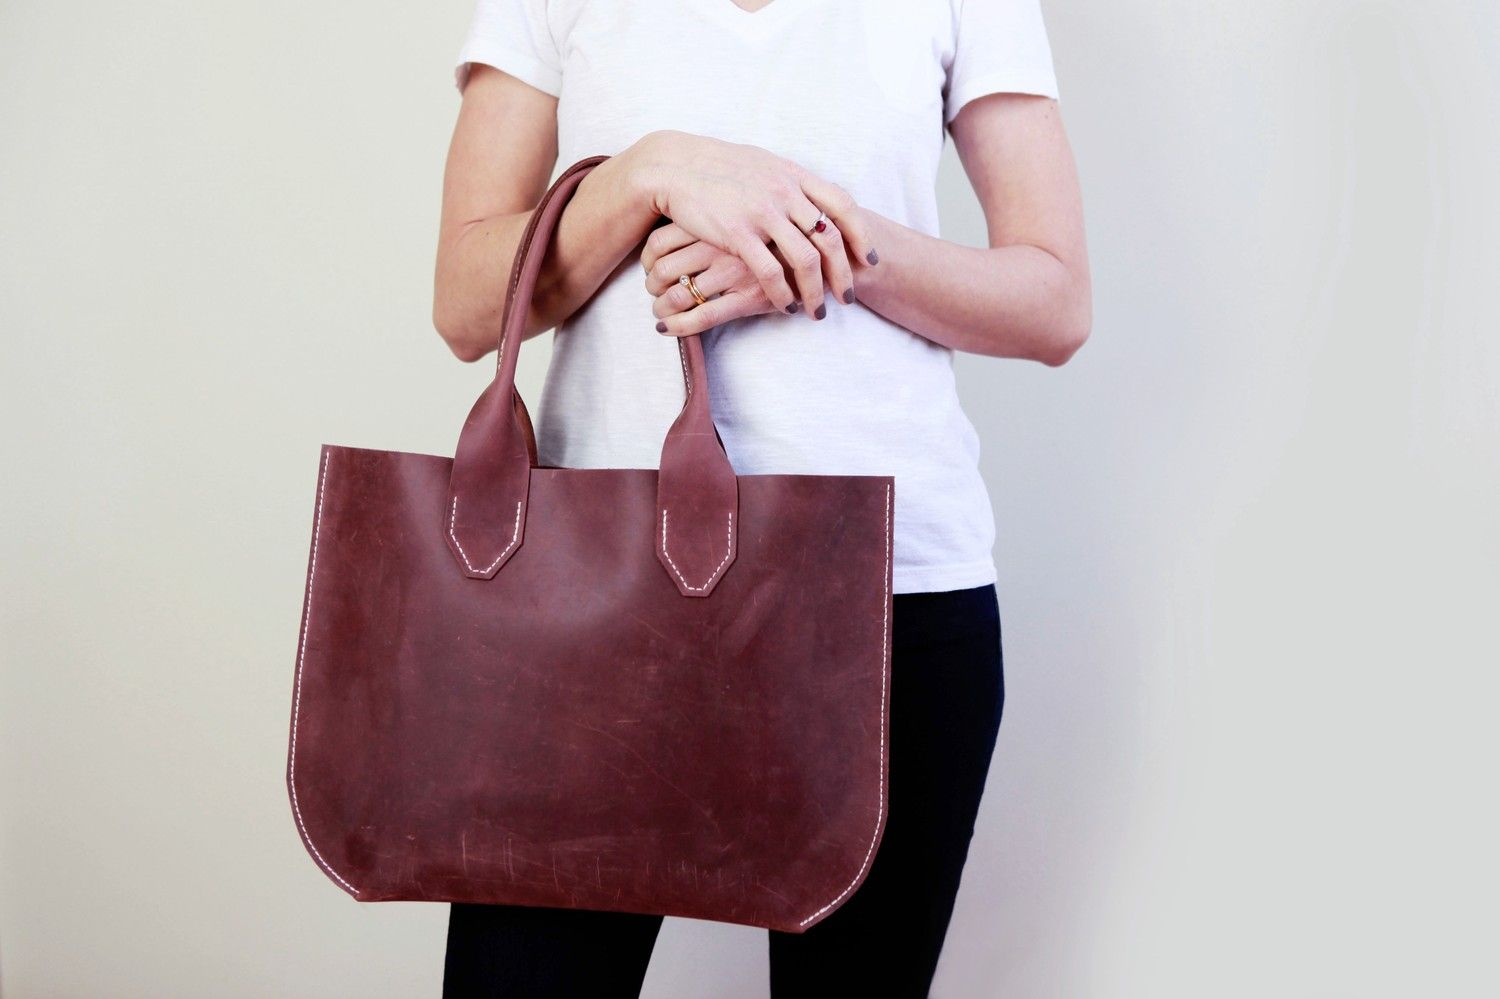 Hand-stitched leather tote vs. Louis Vuitton tote?